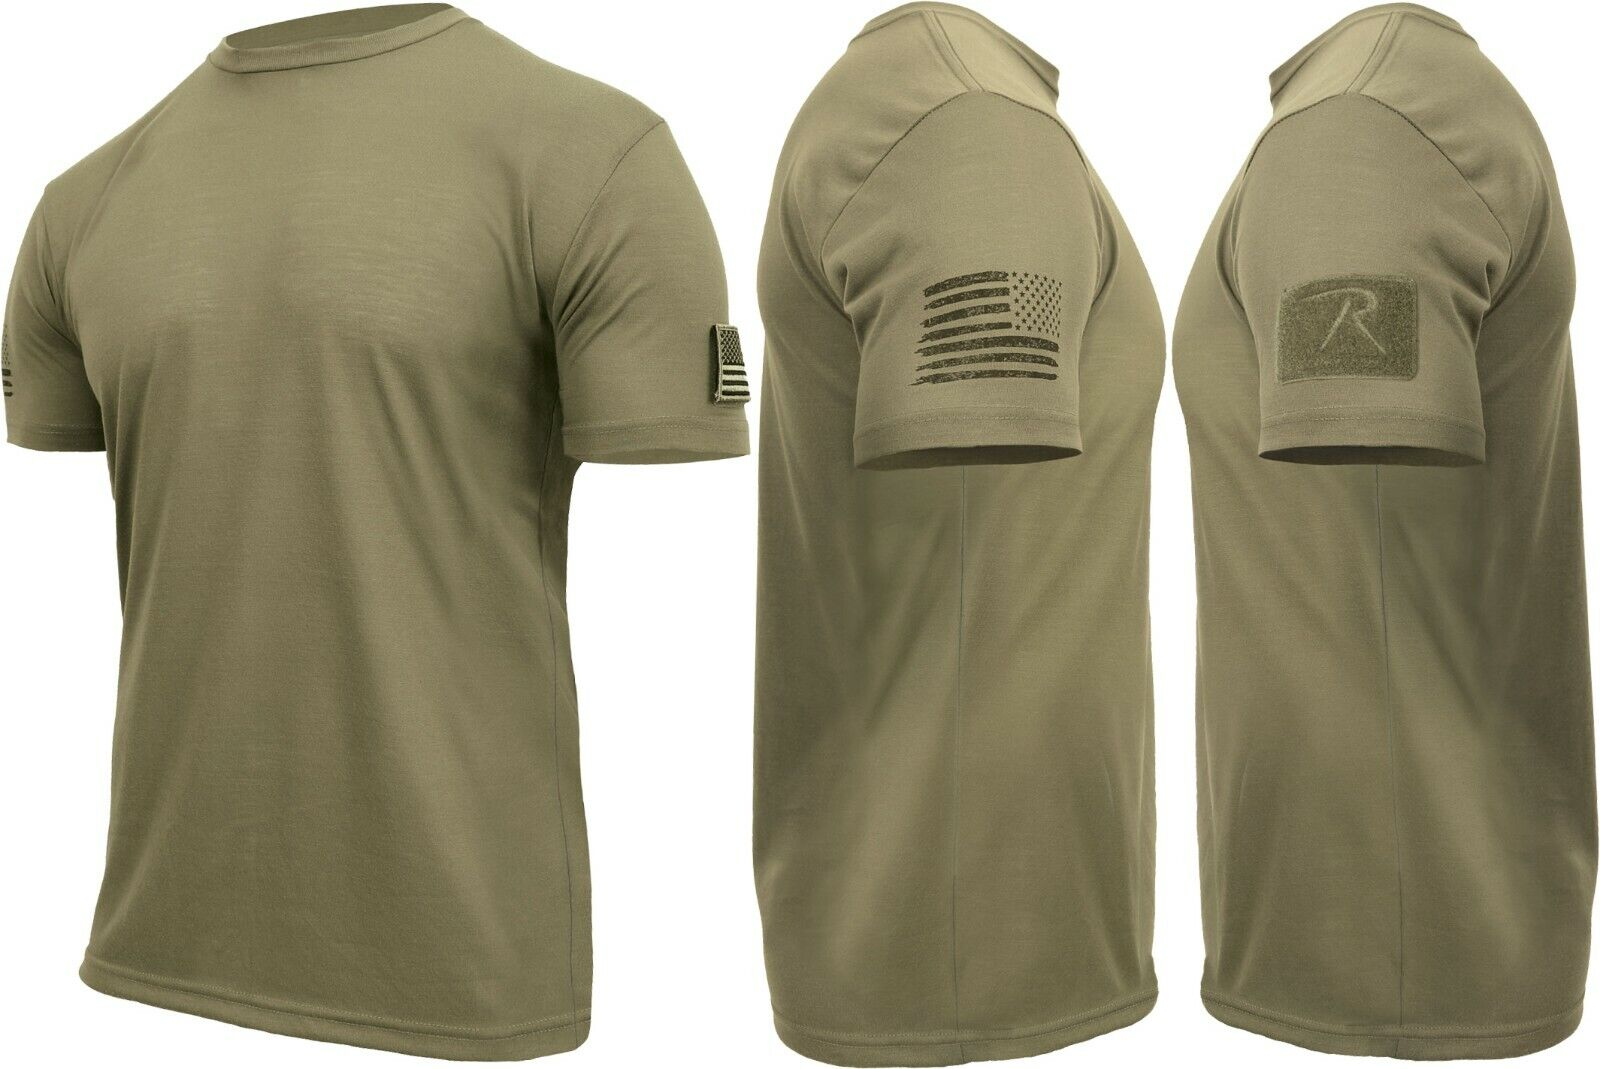 Mens Tactical Athletic Muscle T-Shirt with US Flag & Loop Field Clothing, Shoes & Accessories